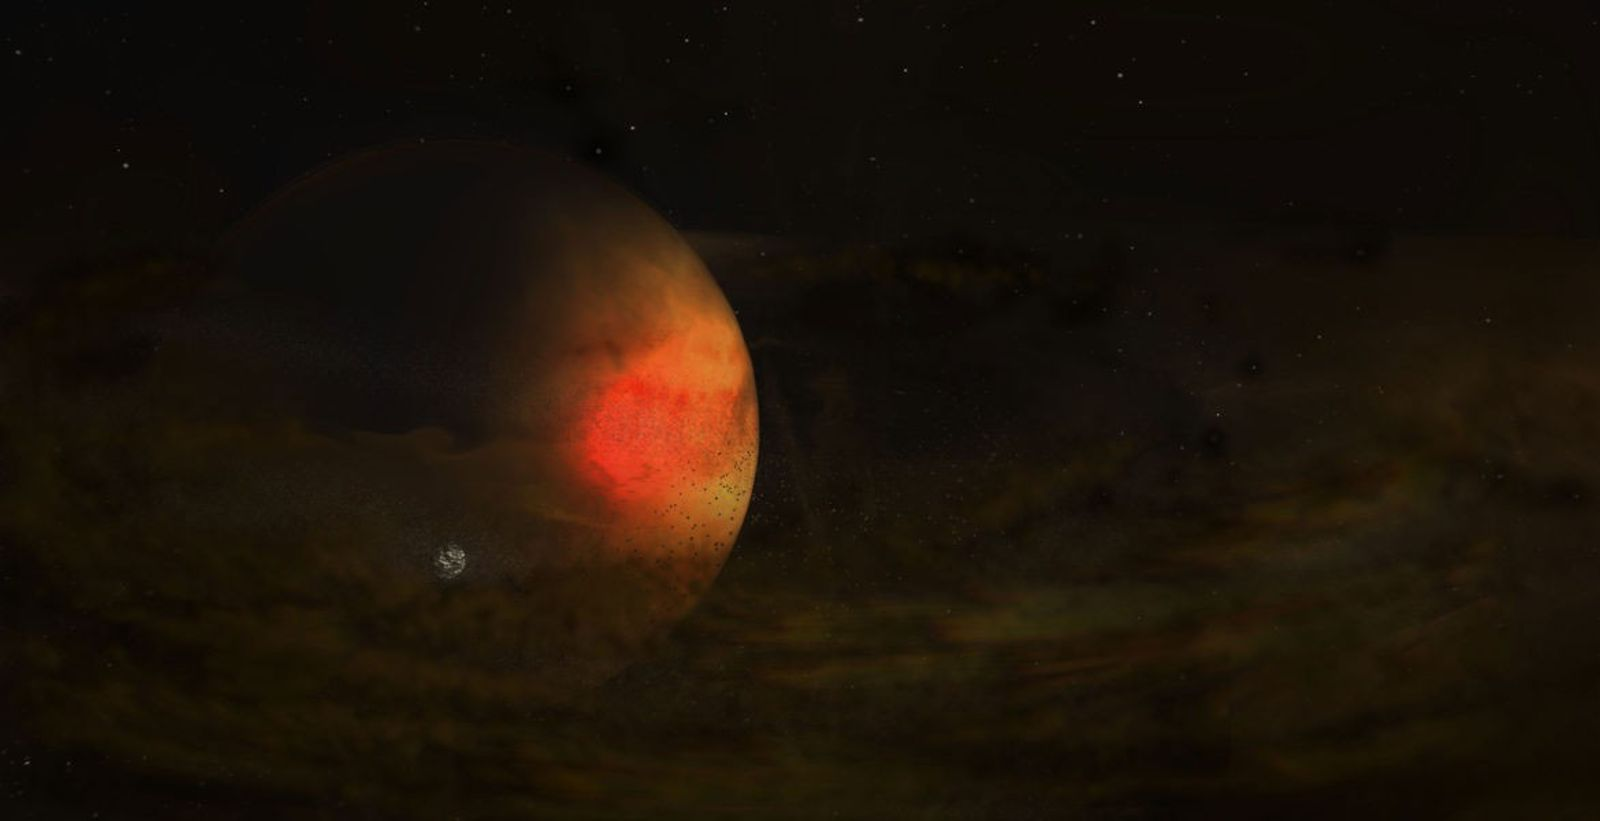 Alien moon likely seen forming in first-of-its-kind picture